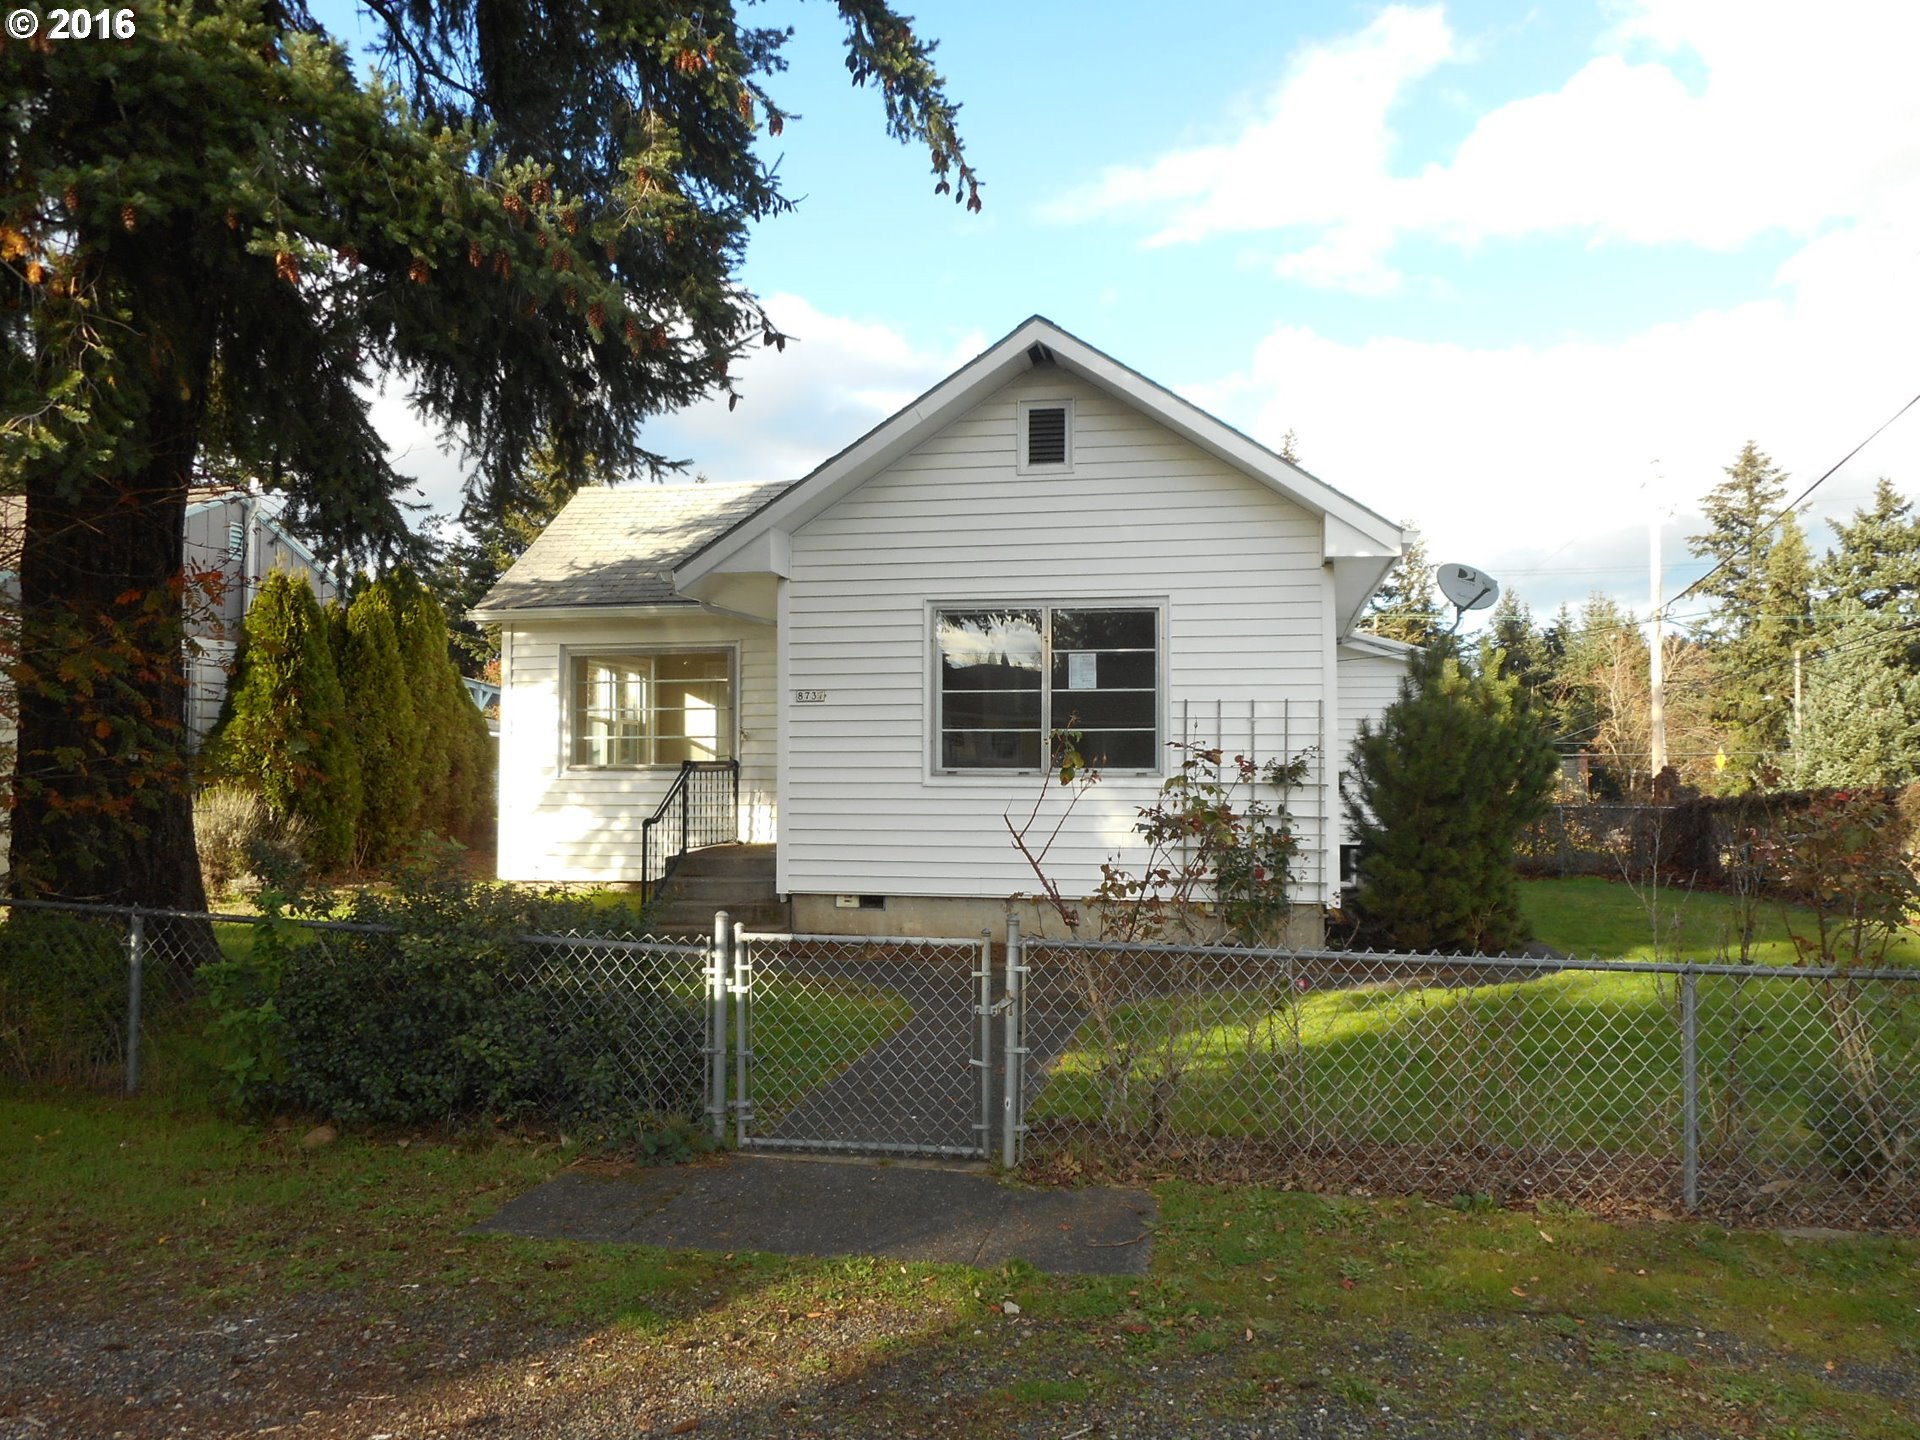 1406 sq. ft 2 bedrooms 1 bathrooms  House ,Portland, OR